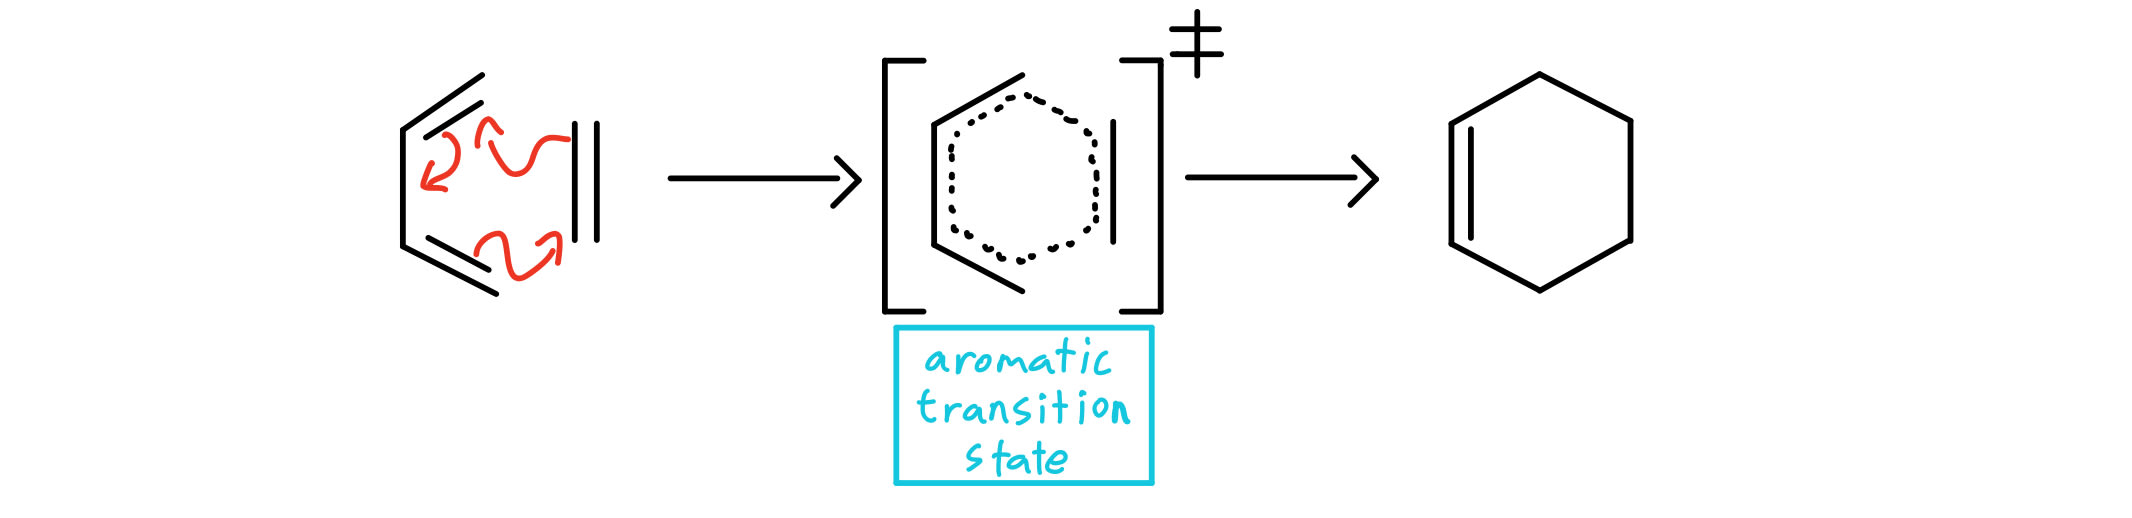 Aromatic transition state